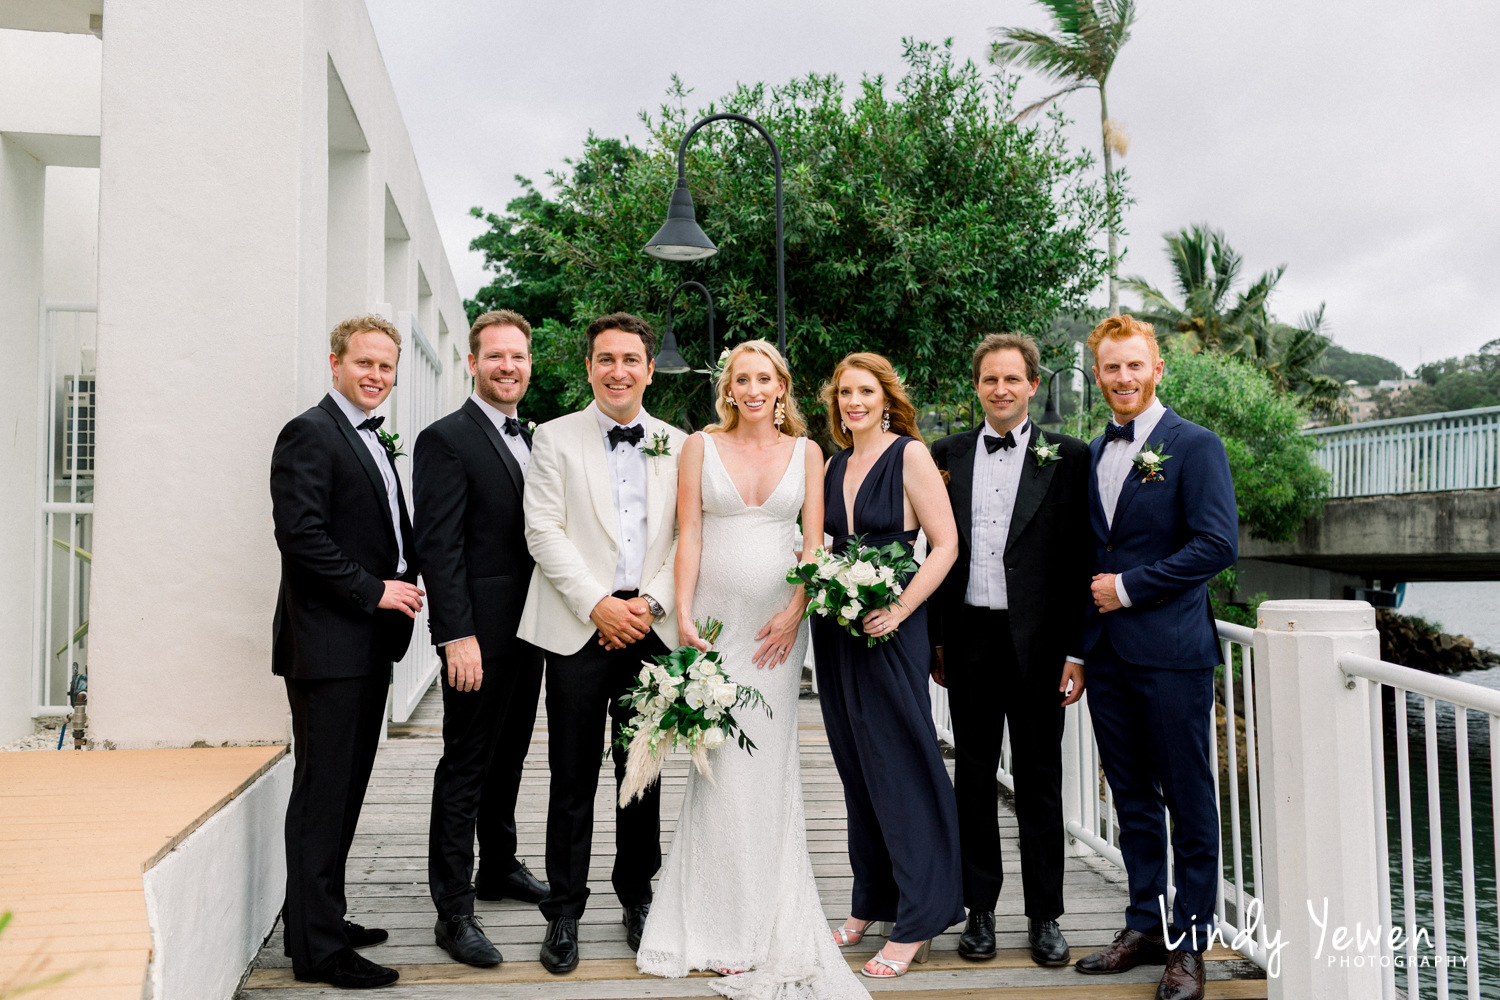 Noosa-Weddings-Amelia-Michael 309.jpg